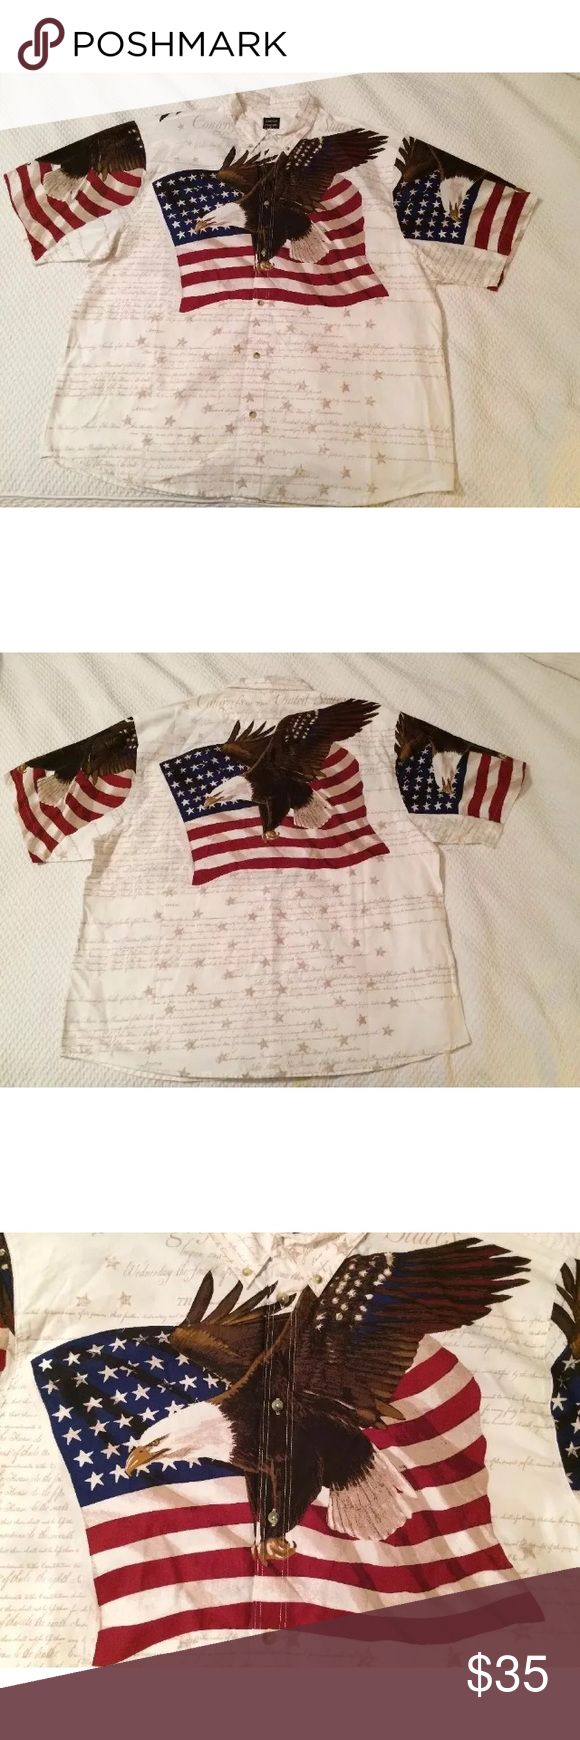 """Man's s casual shirt size M """"American Flag"""" Show your American spirit by wearing this beautiful patriotic shirt.  New with tag, 100% Cotton in Size Medium: 22"""" from armpit to armpit 10 1/2"""" from top of shoulder to end of sleeve  31"""" long from back of collar to bottom of the shirt.  Thanks! cotton traders Shirts Casual Button Down Shirts"""